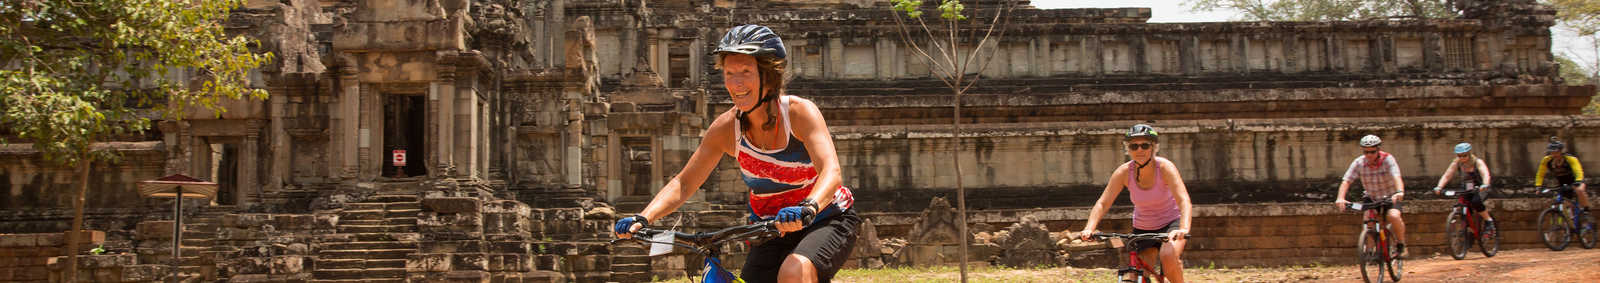 Cycling in Asia